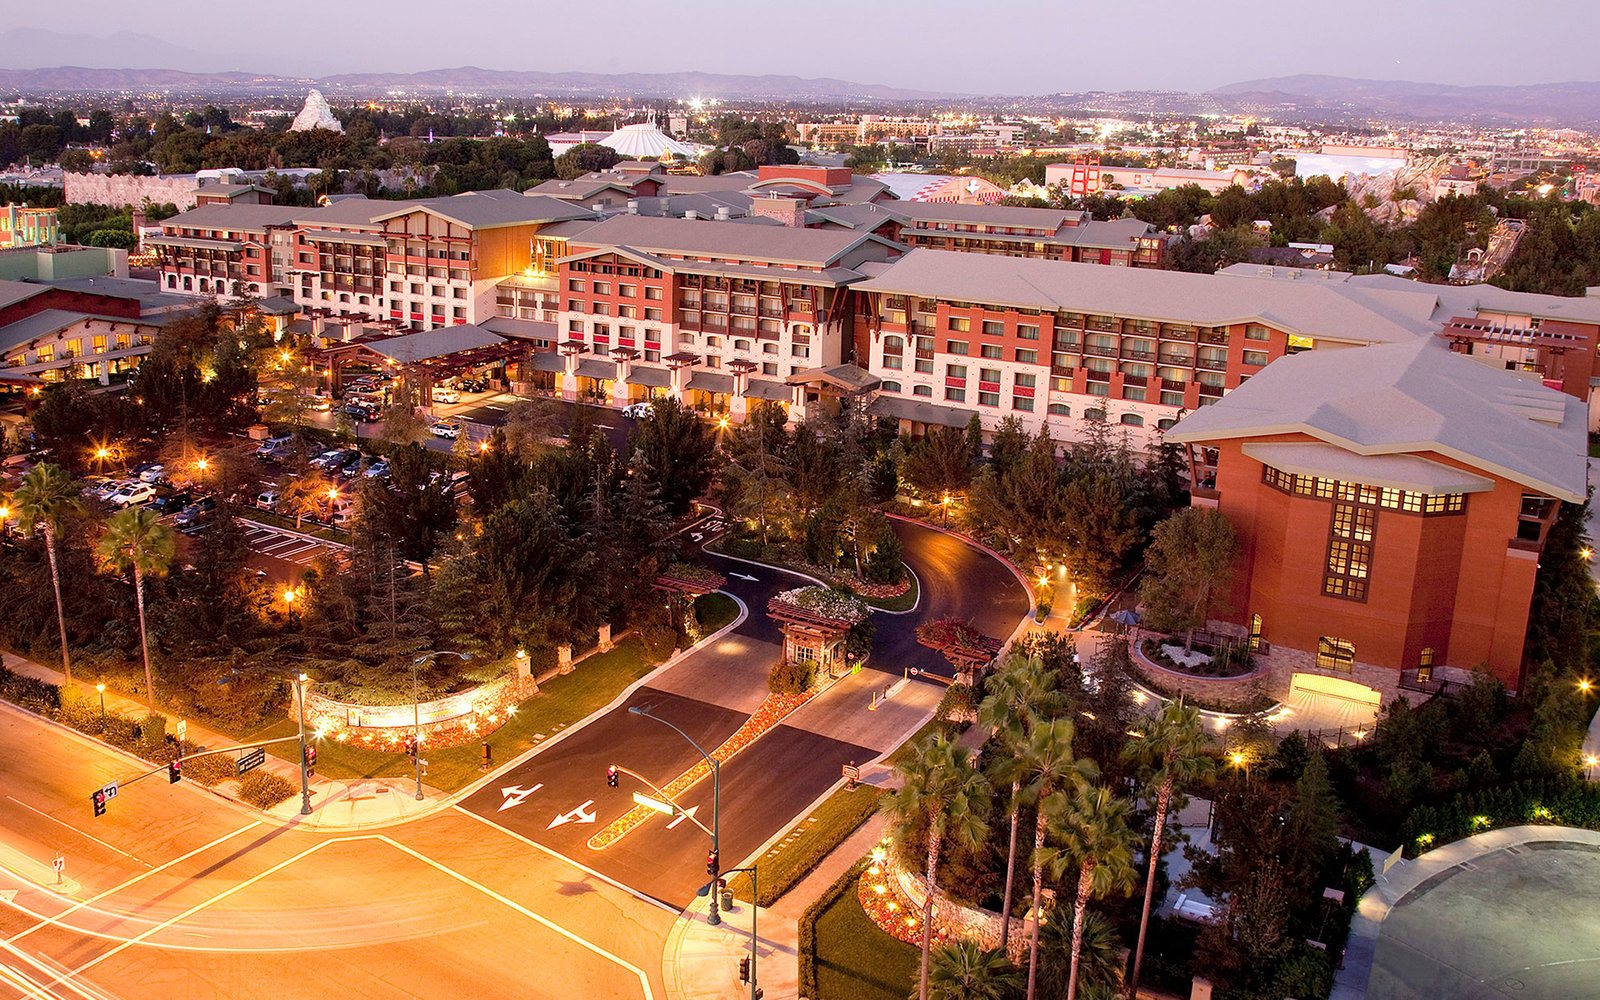 No. 10: Disney's Grand Californian Hotel, Anaheim, California